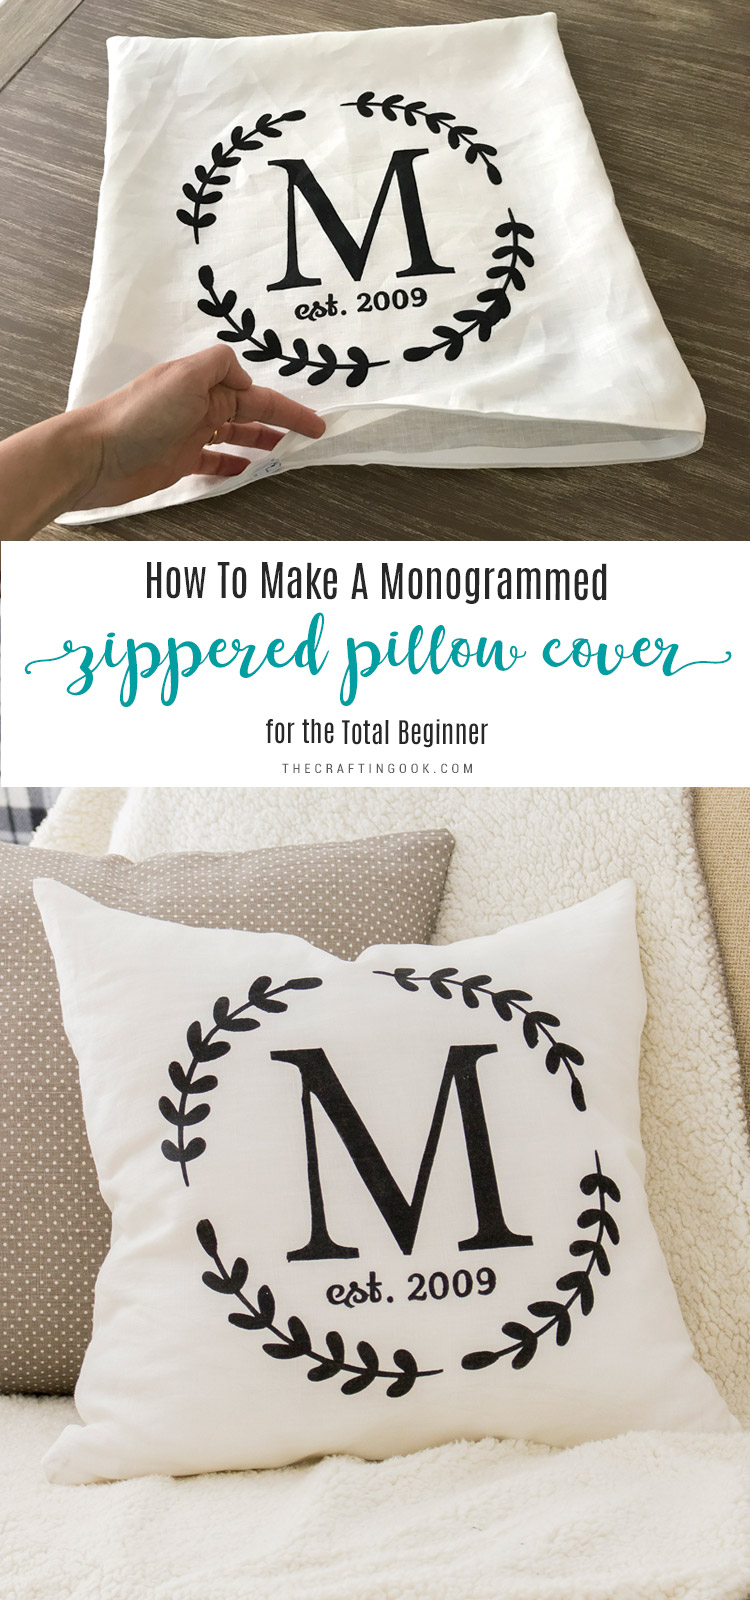 Make a Monogrammed Zippered Pillow Cover (An Easy Tutorial for the Total Beginner)